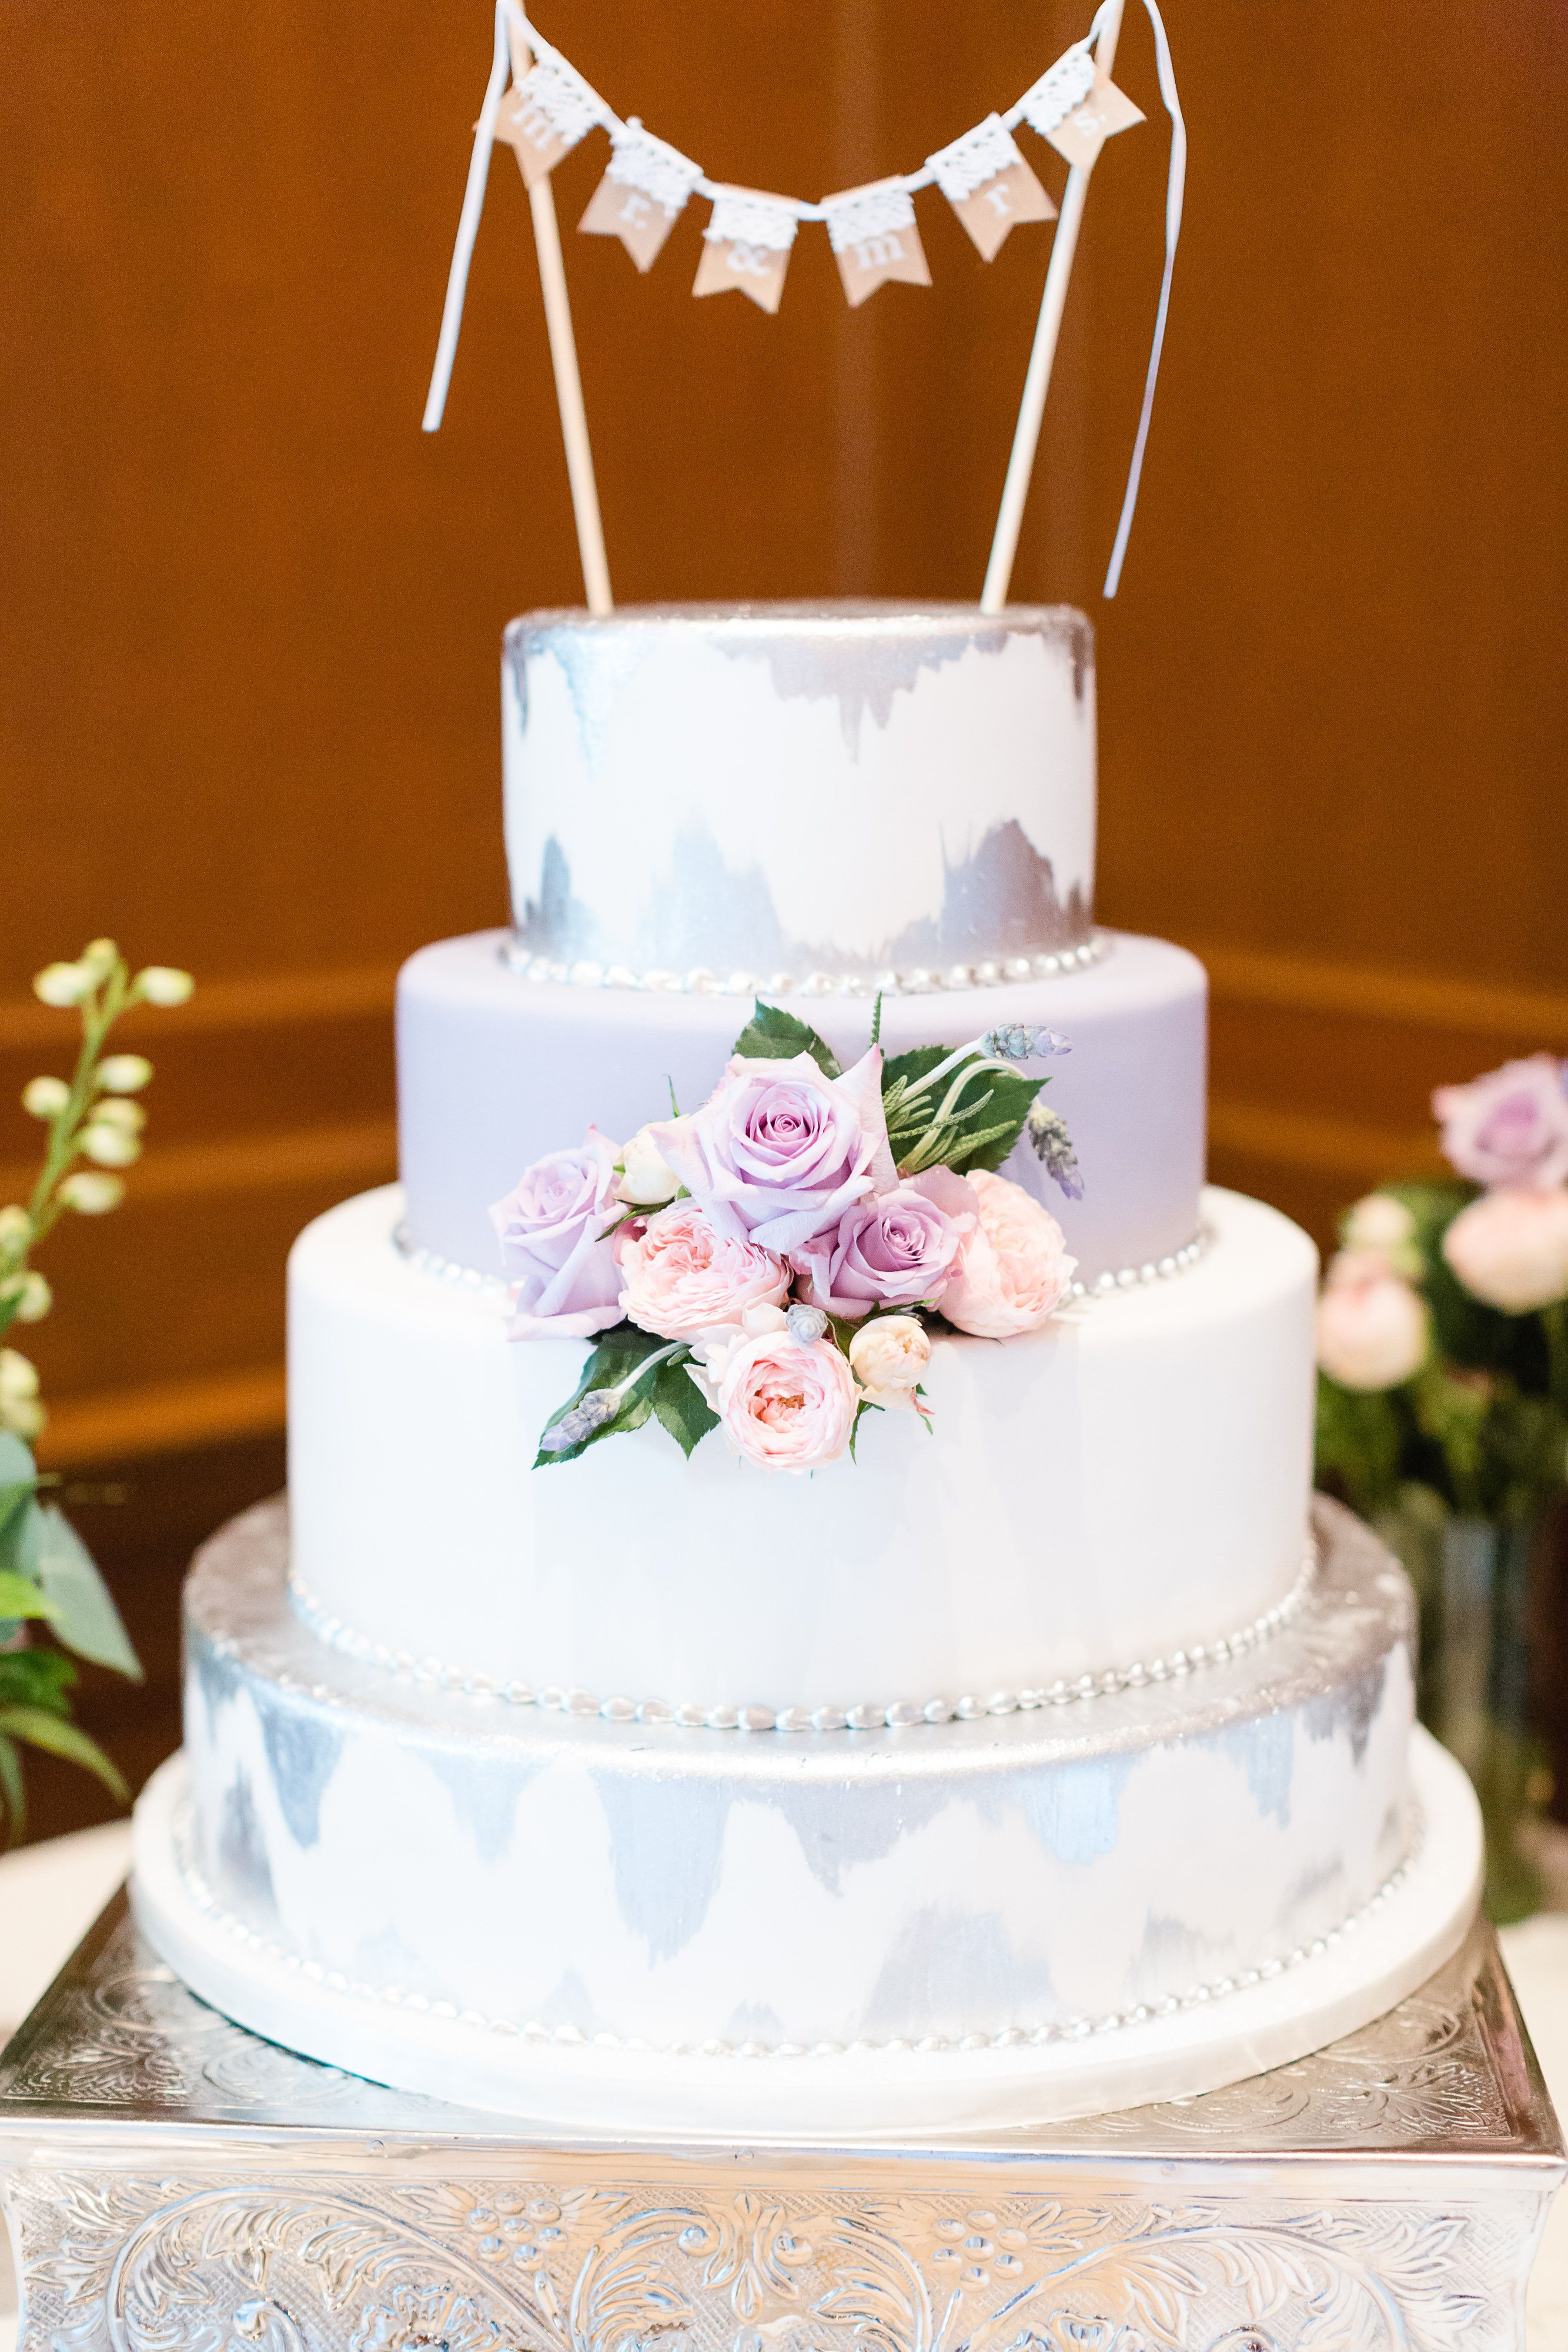 Gorgeous four tier cake with purple & light pink roses in the center ...